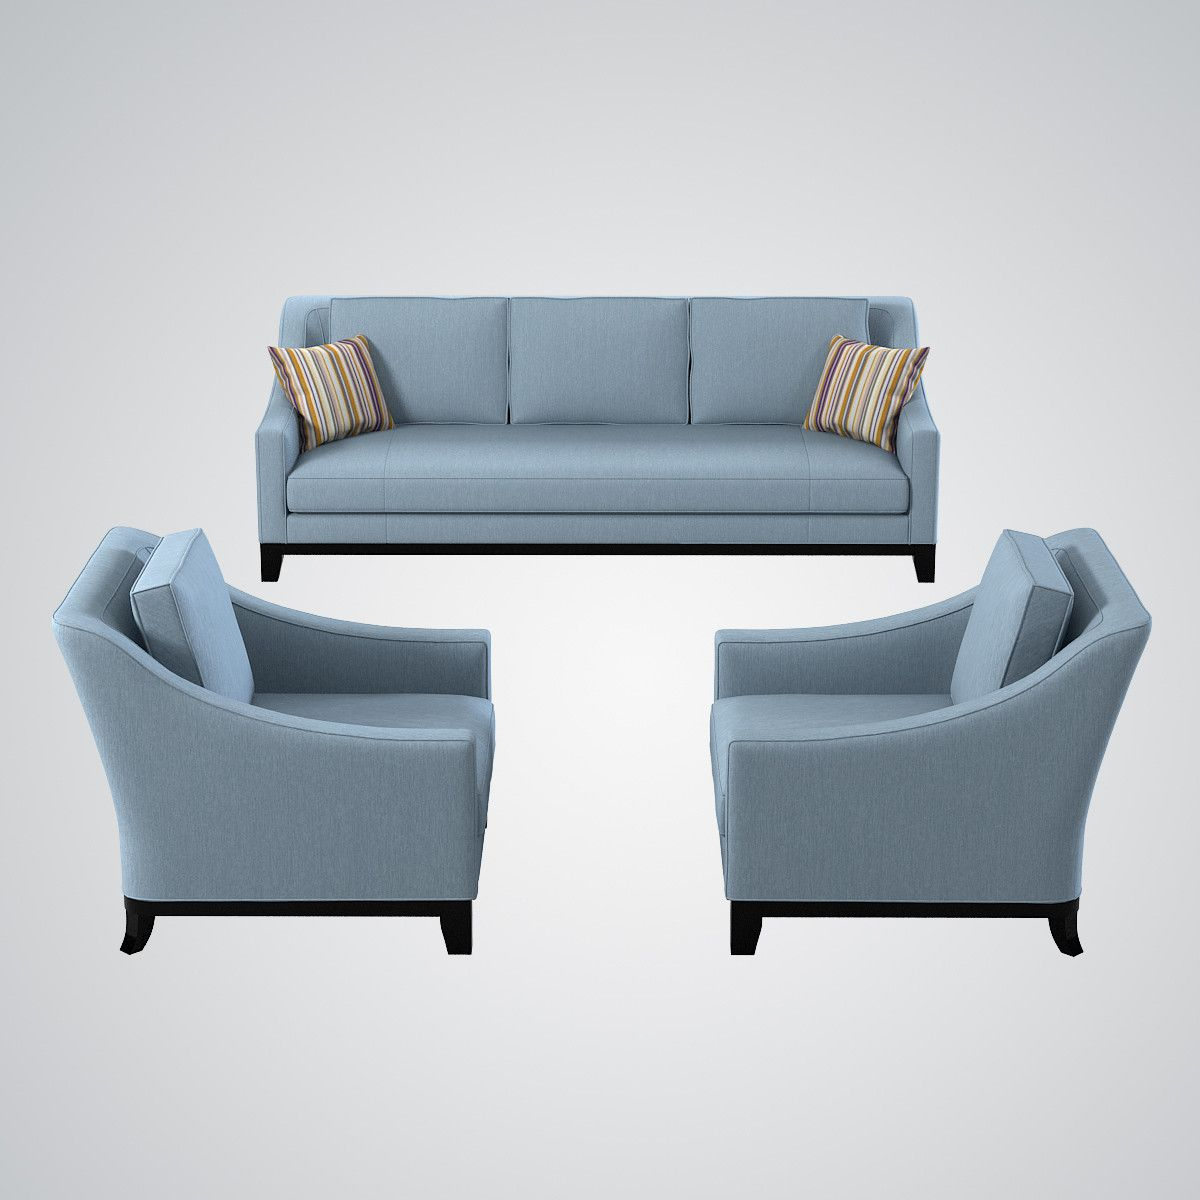 cool Sofa And Chair Set , Luxury Sofa And Chair Set 6 For Your